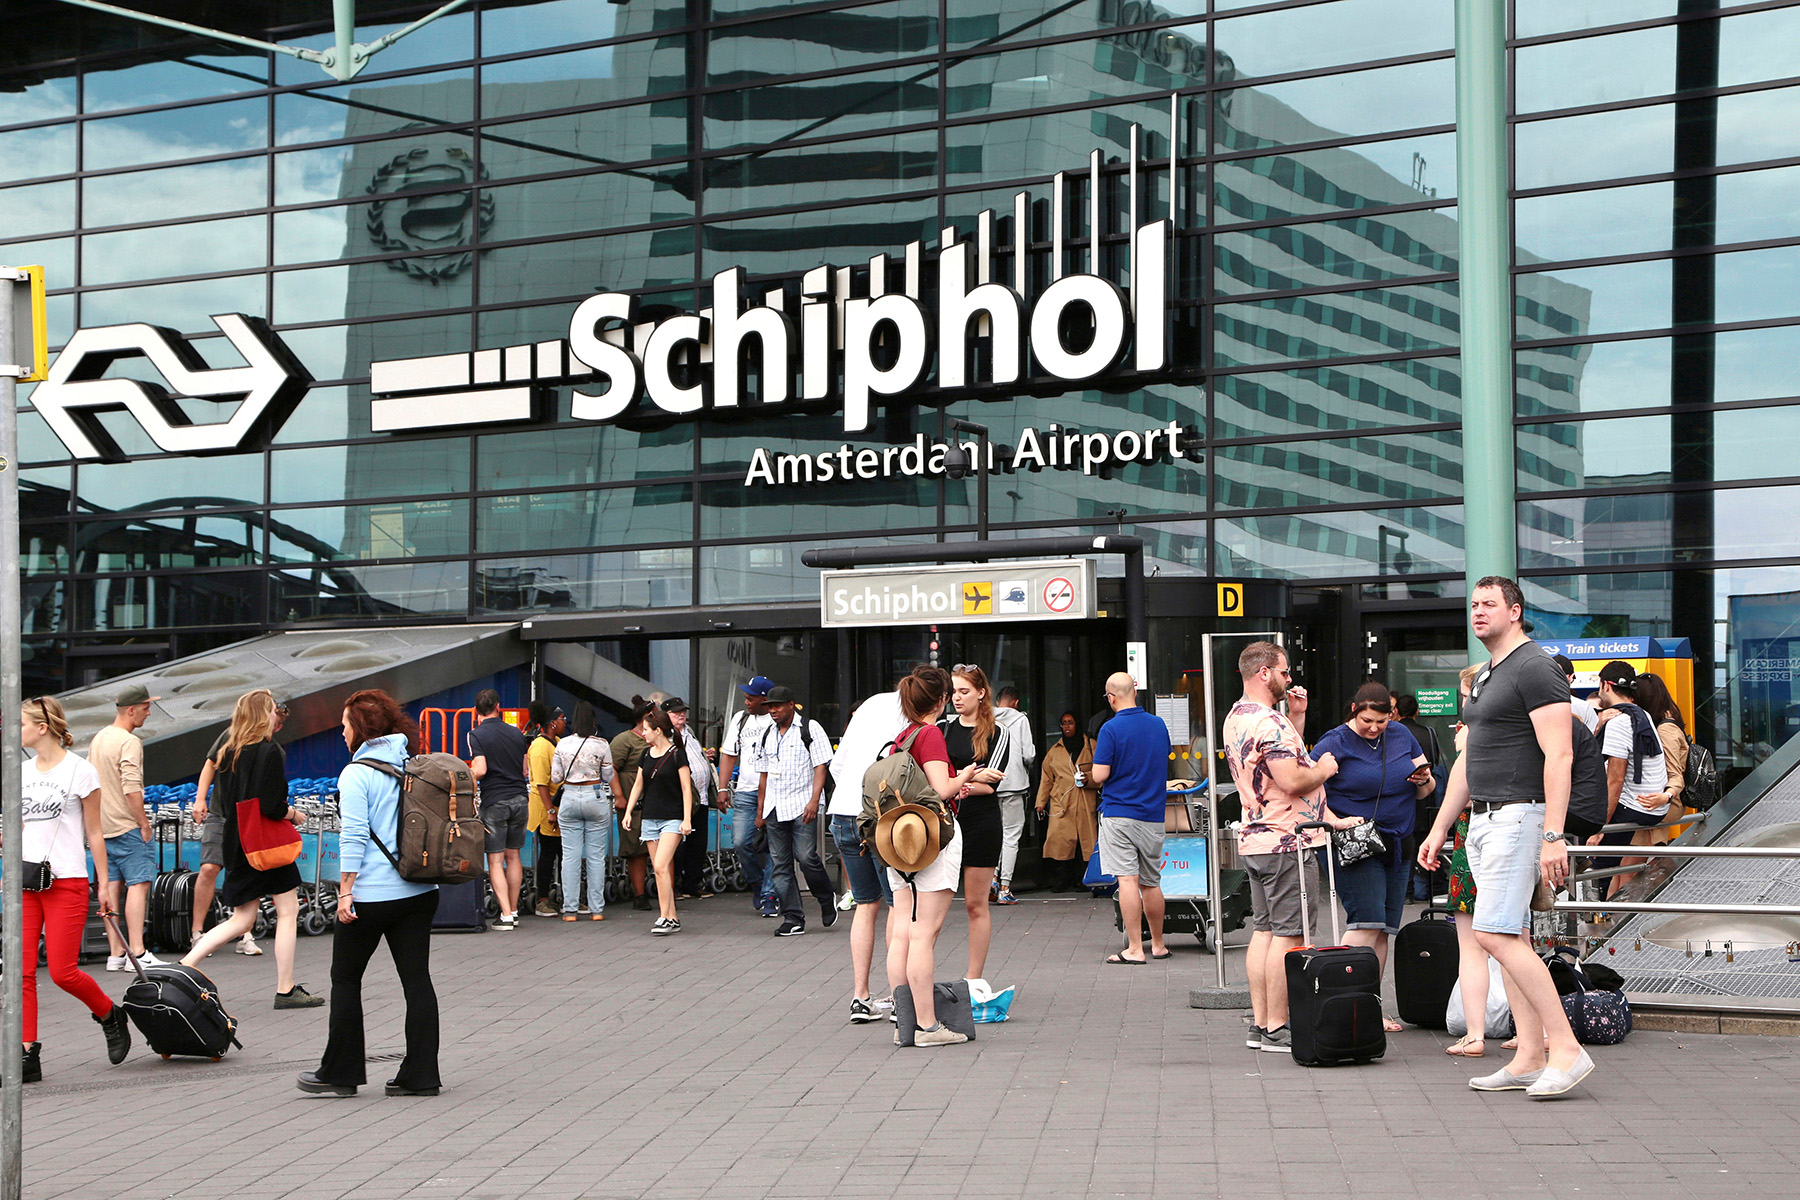 Arrivals at Schiphol airport